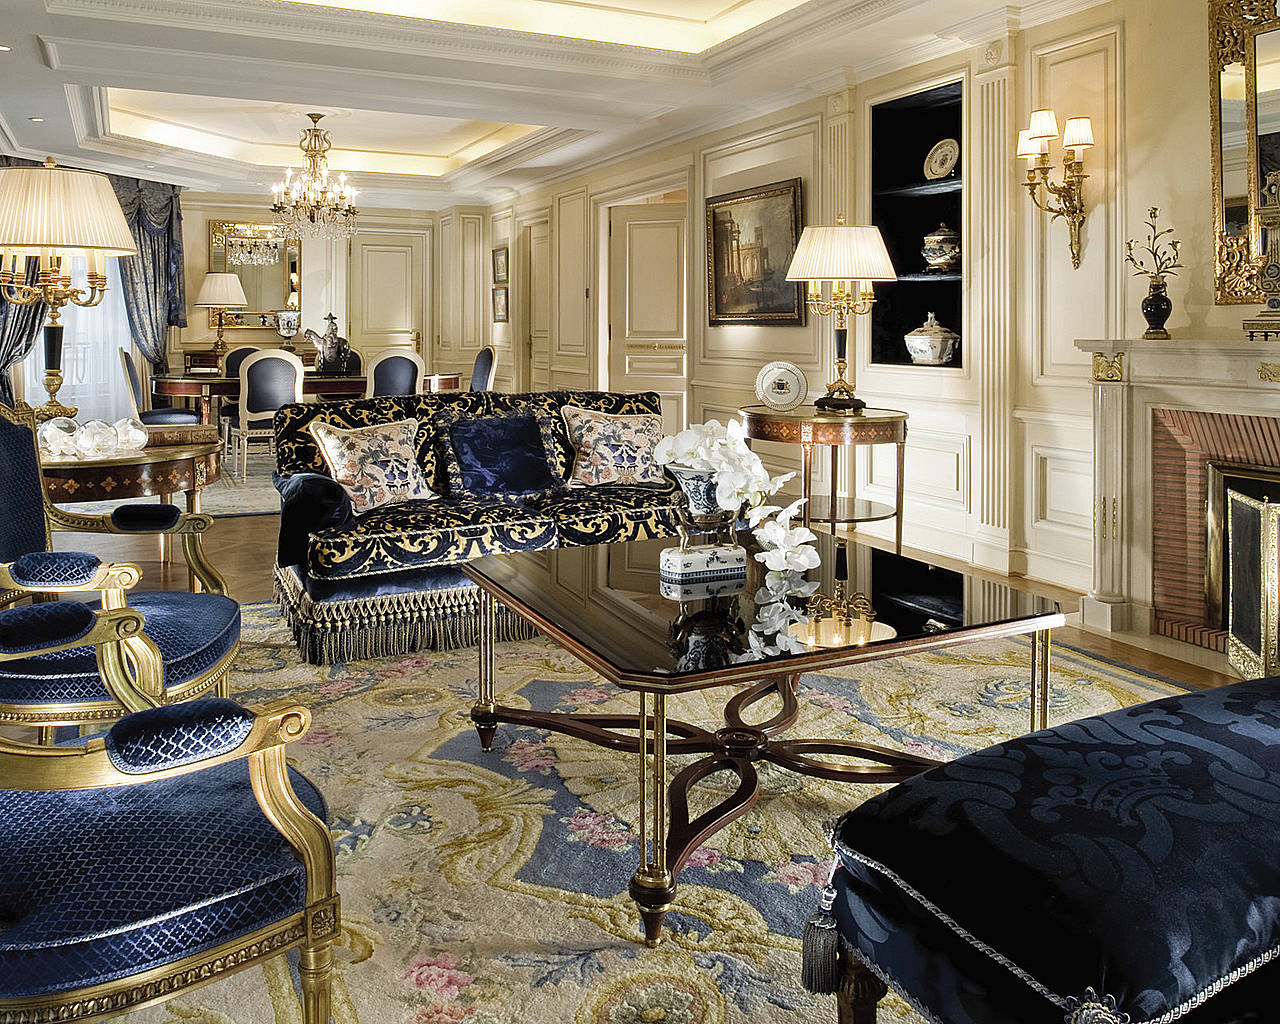 Stay at Four Seasons Hotel George V Paris title=